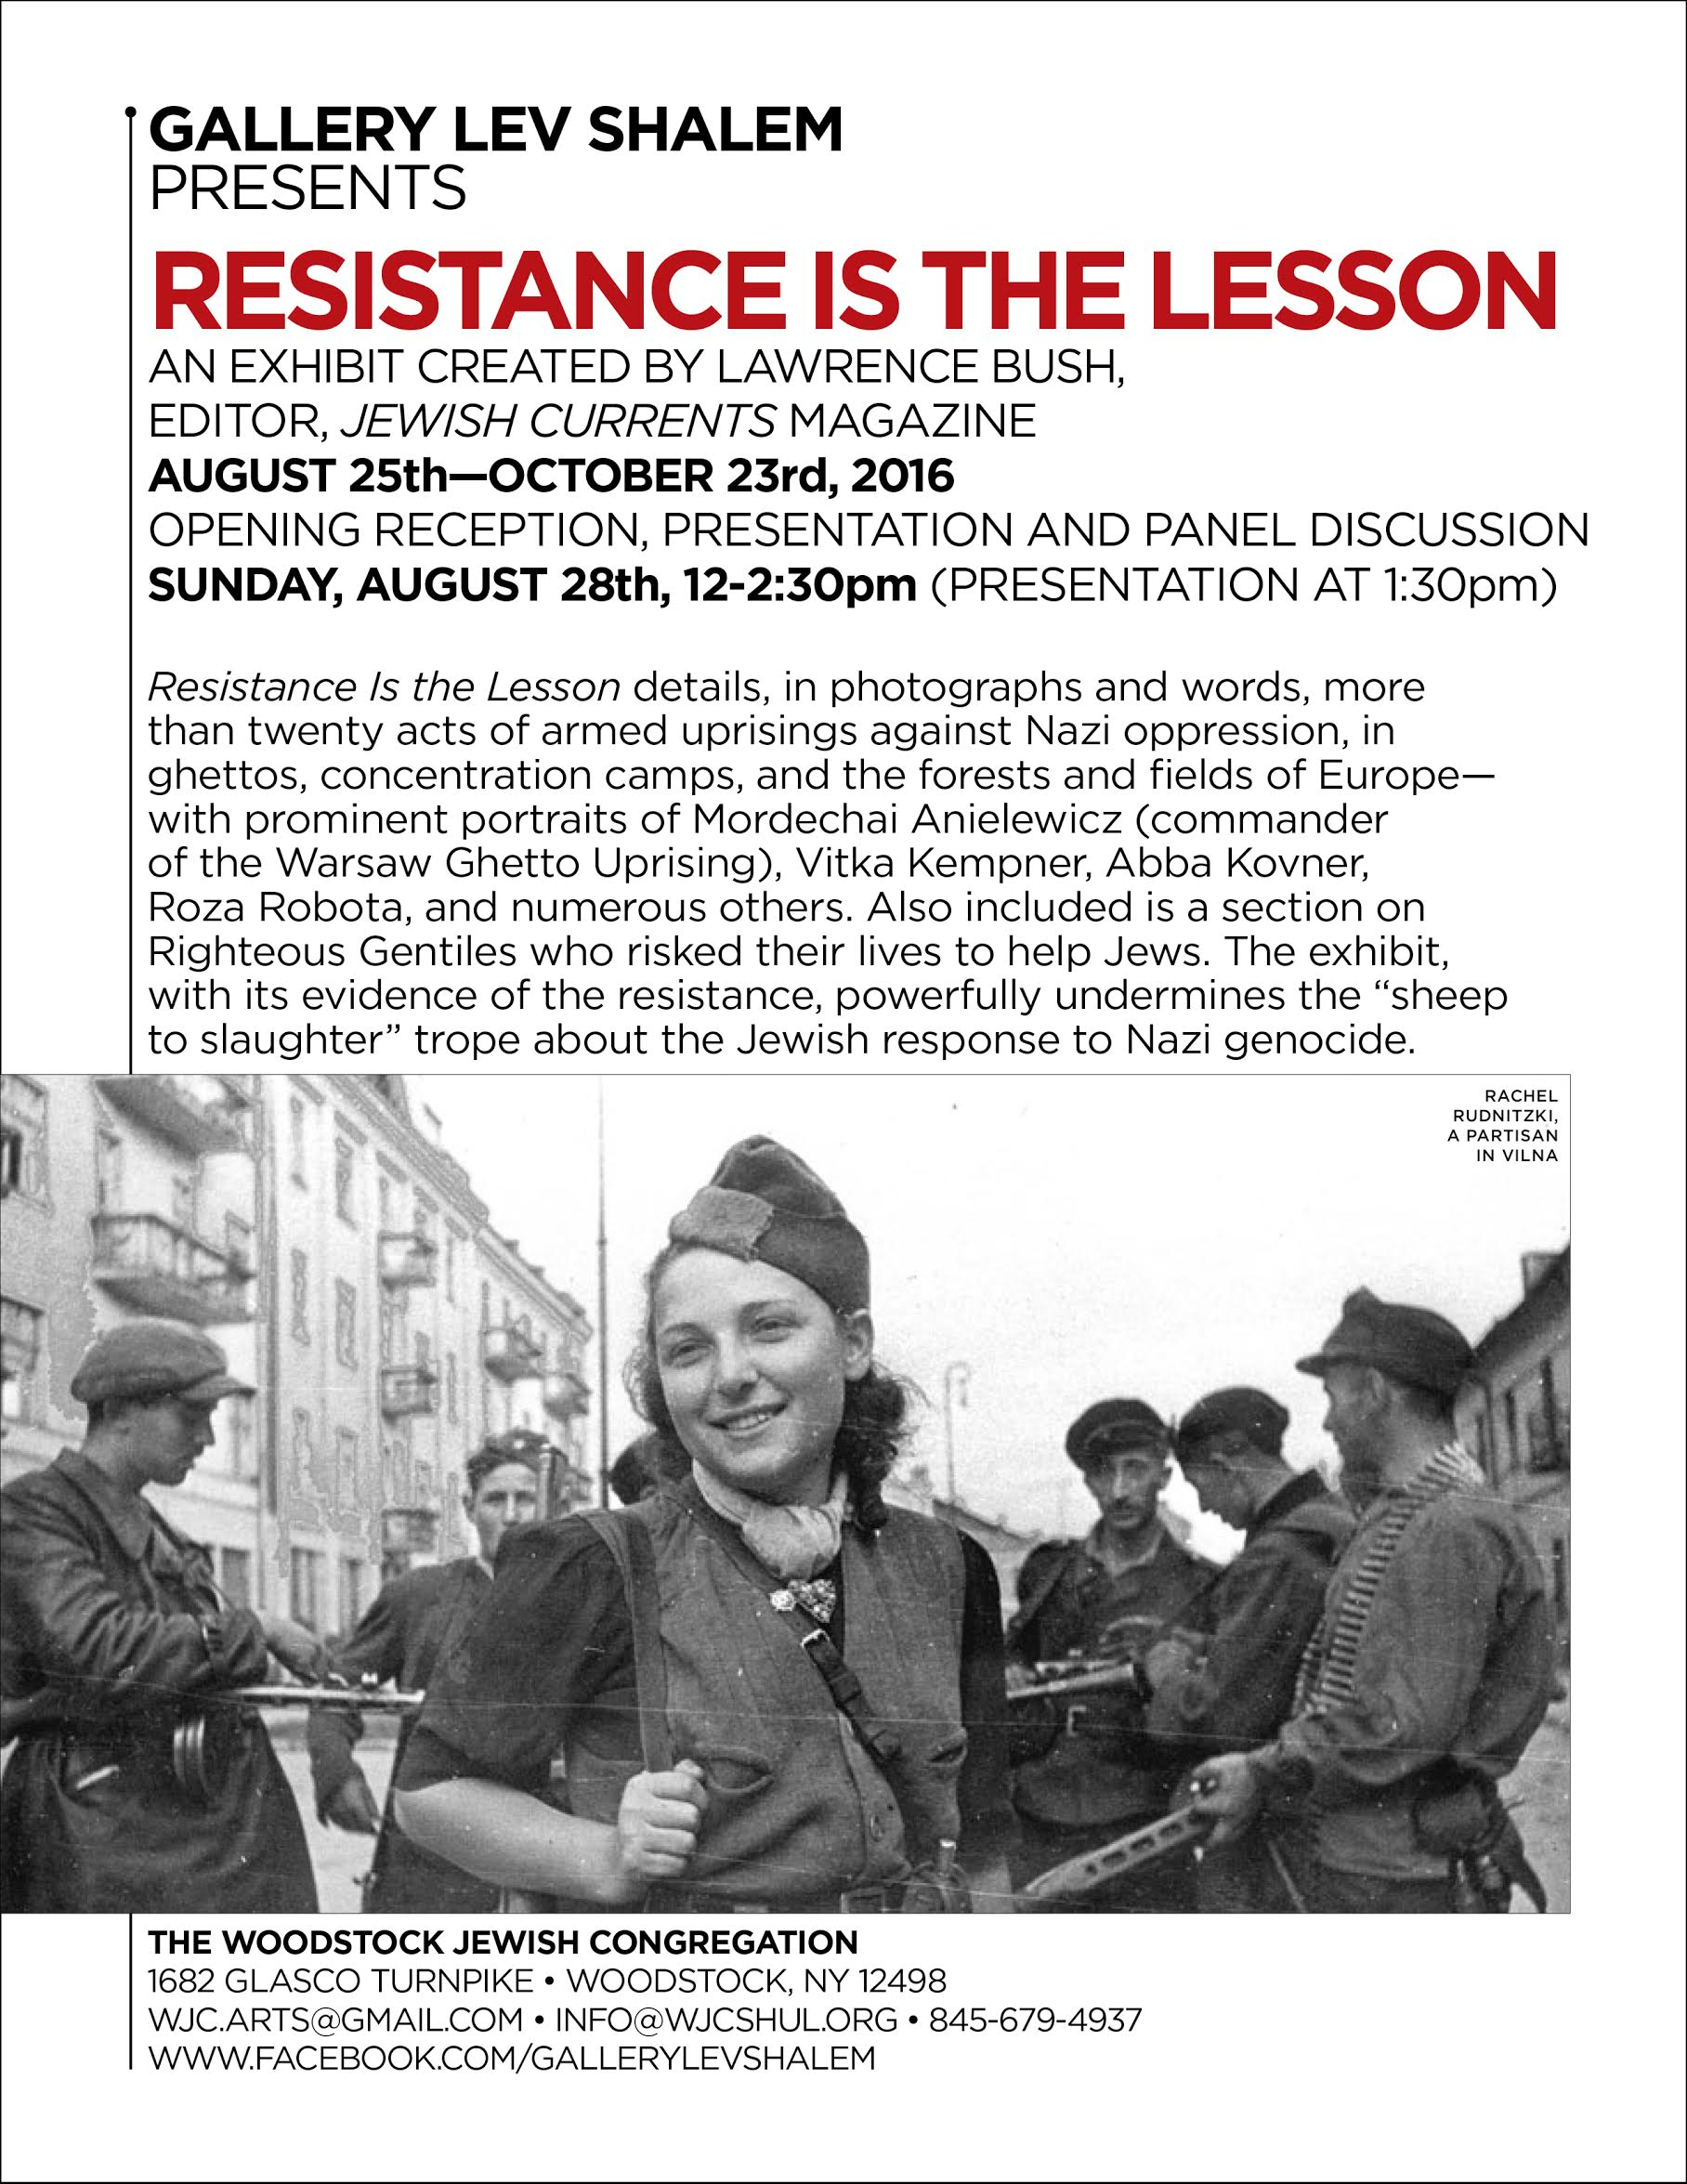 Resistance Is the Lesson: August 25-October 23, 2016